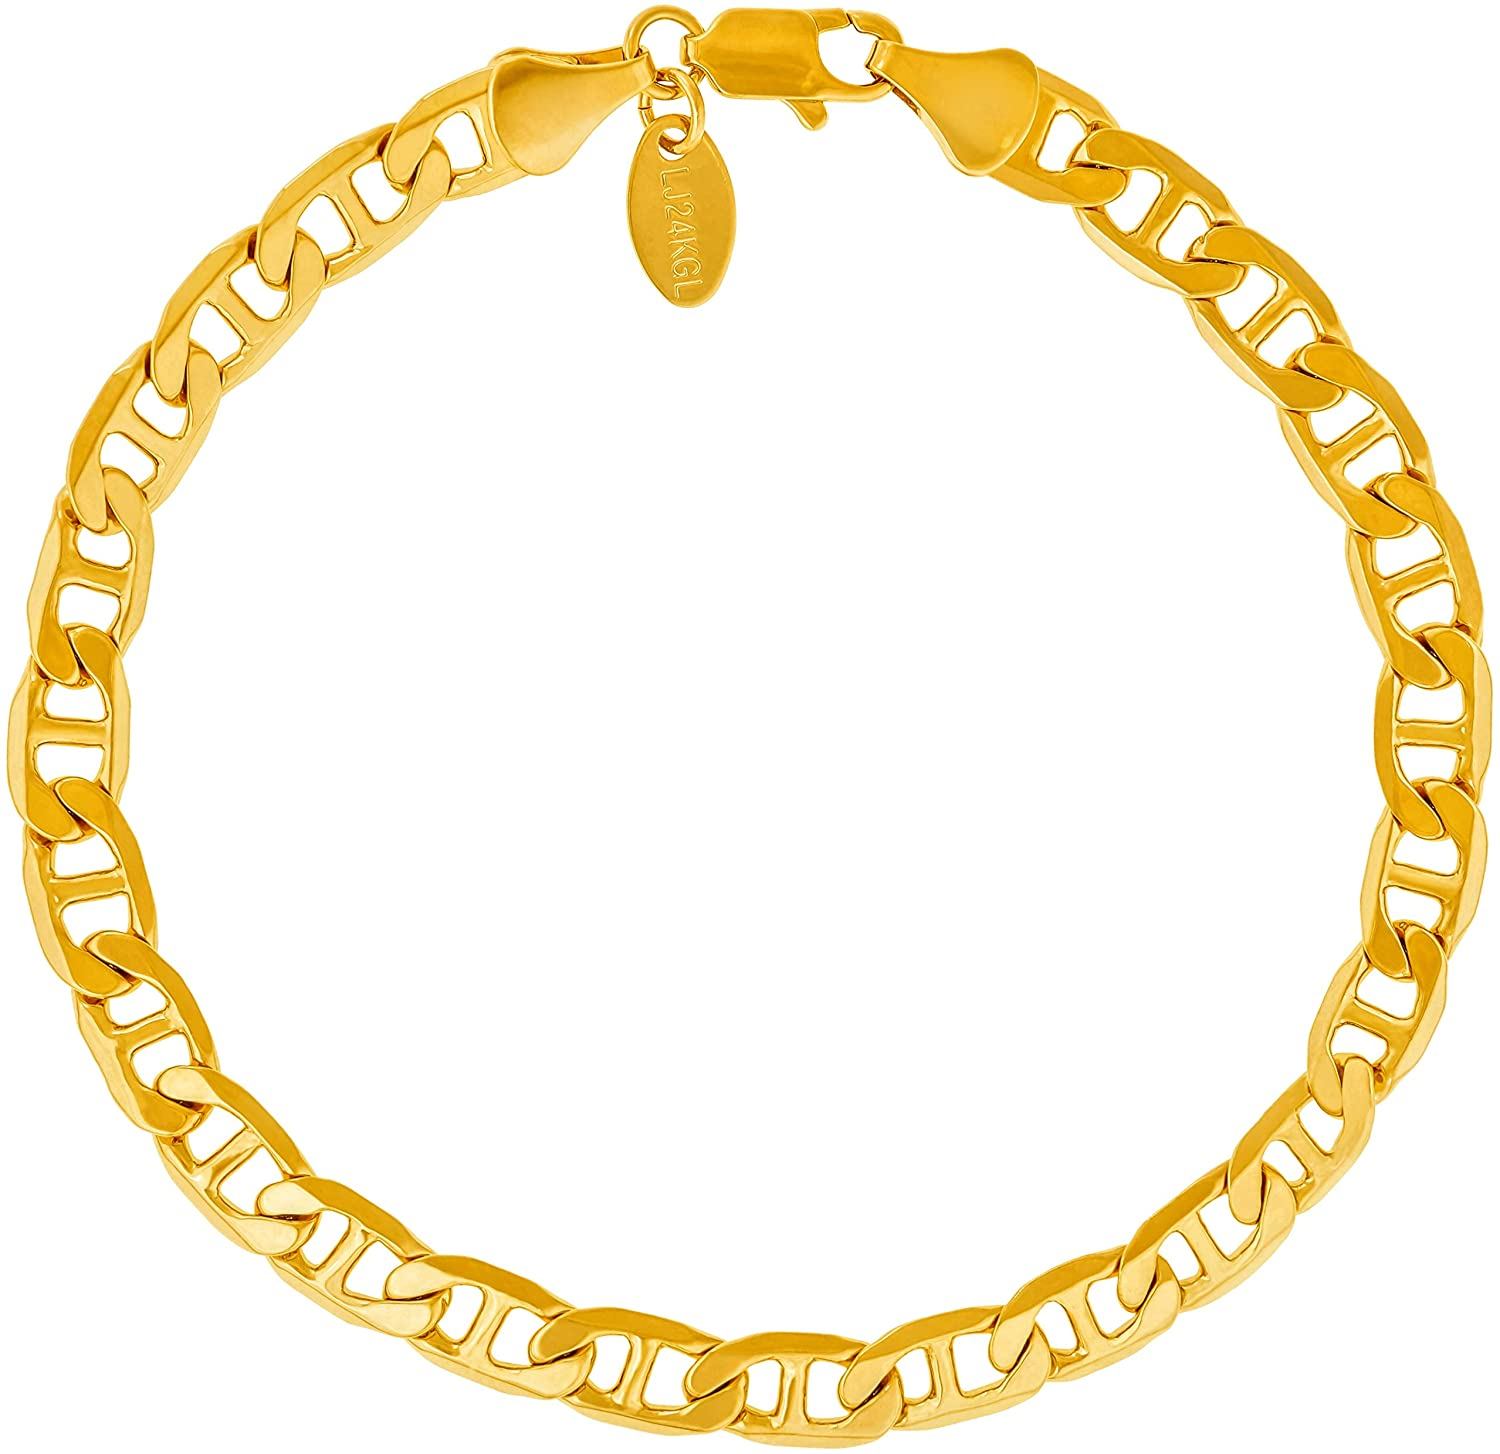 Lifetime Jewelry 6mm Mariner Link Chain Anklet for Women & Men 24k Gold Plated